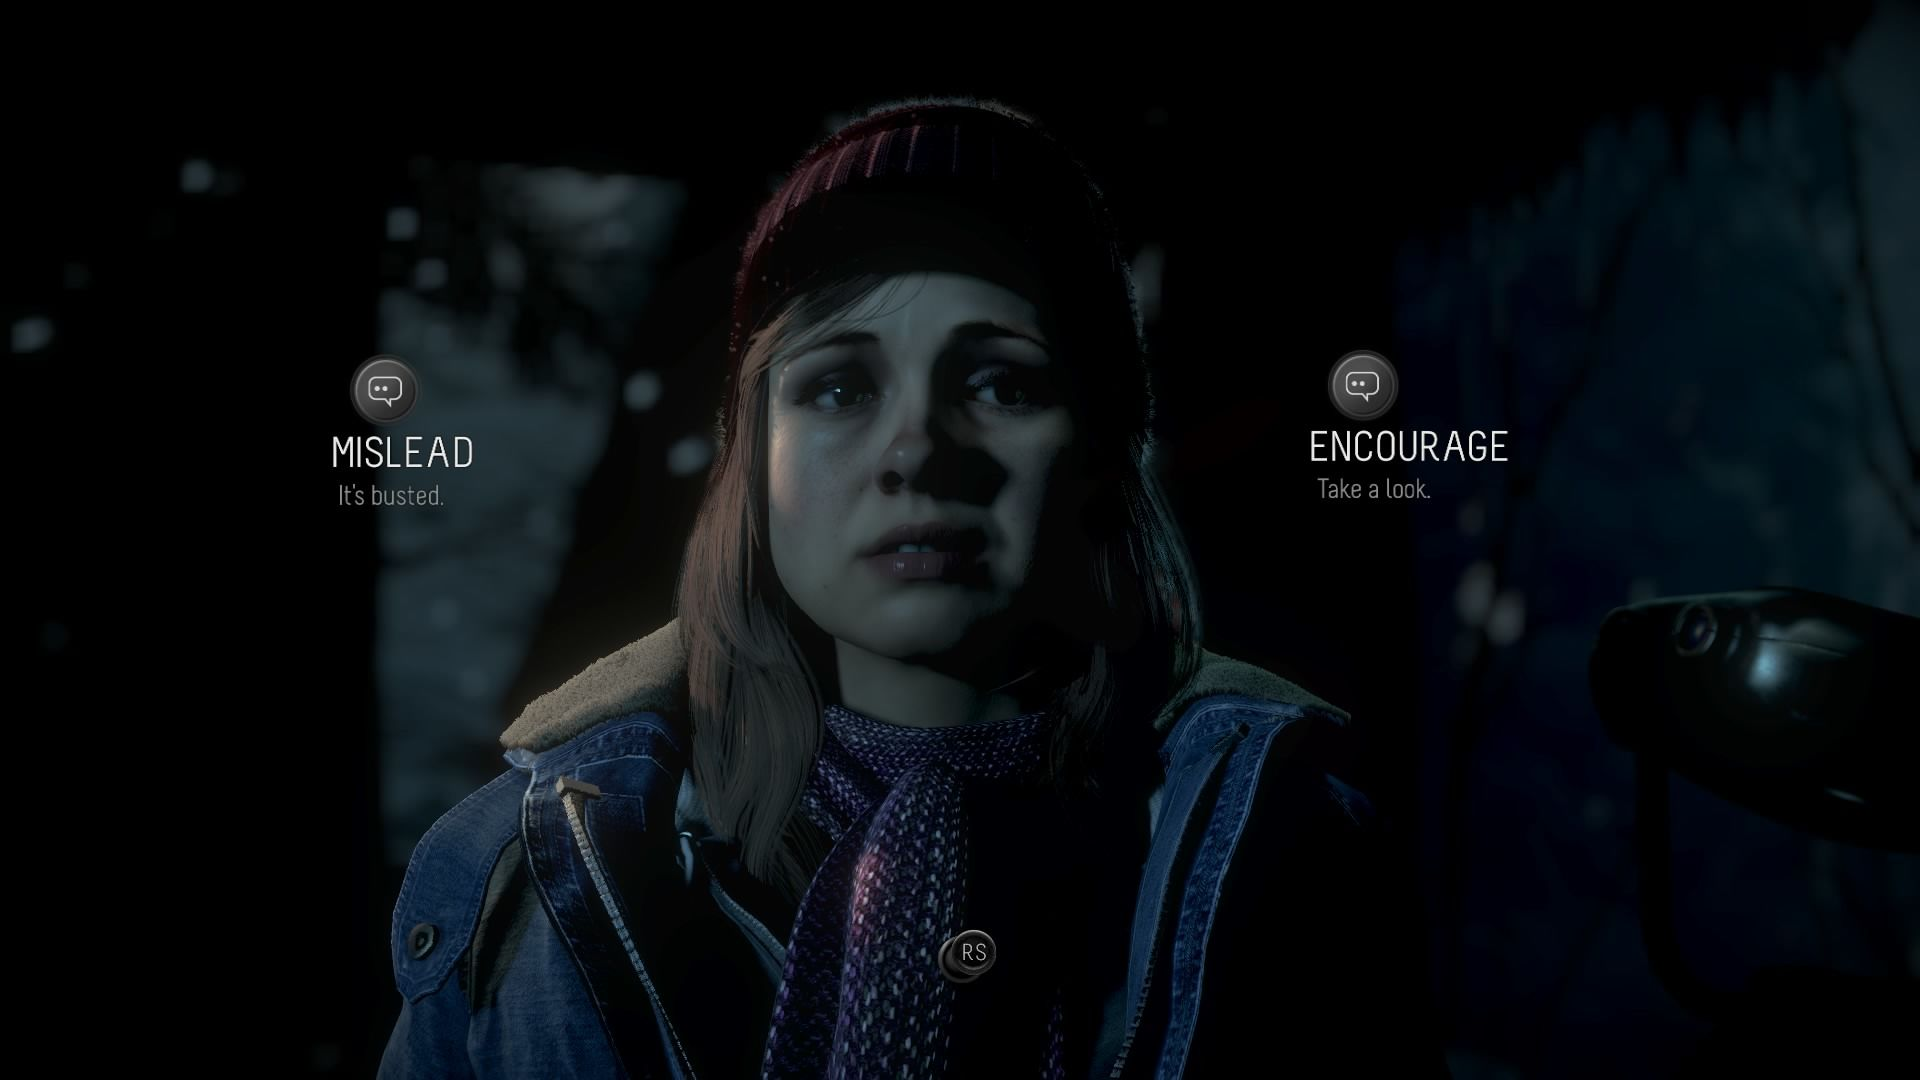 798036-until-dawn-playstation-4-screenshot-ashley-not-sure-if-it